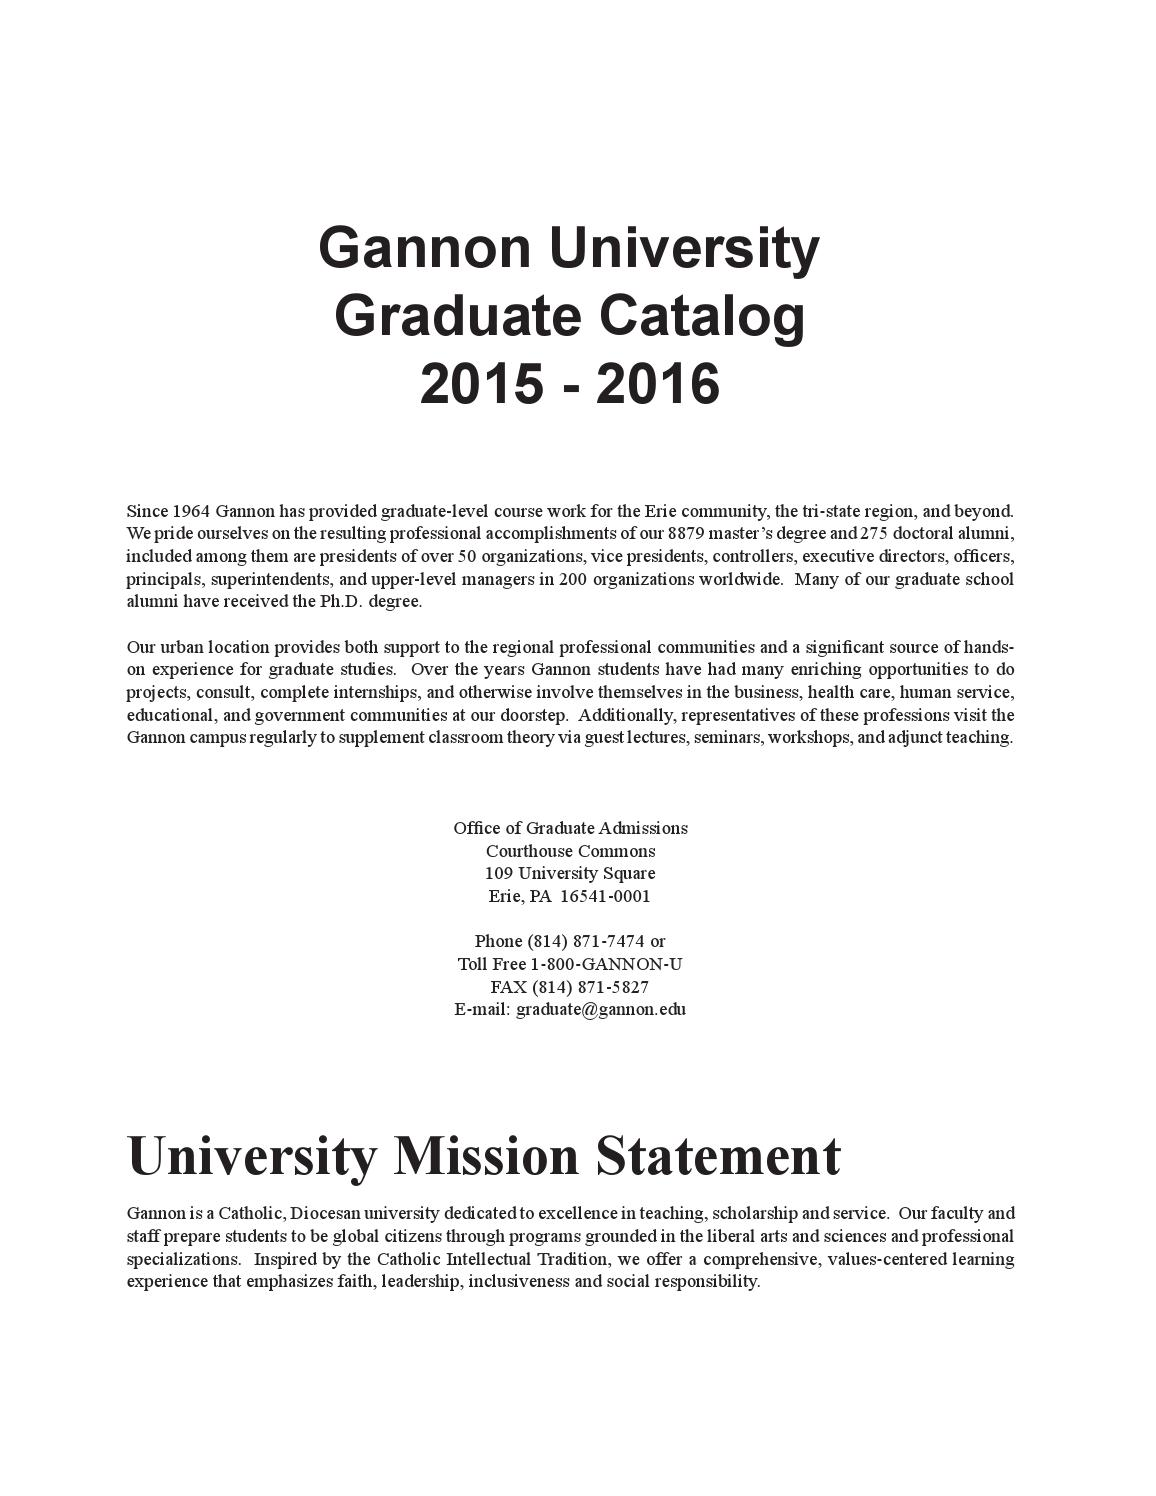 Gannon university graduate catalog 2015 2016 by gannon university gannon university graduate catalog 2015 2016 by gannon university issuu fandeluxe Choice Image